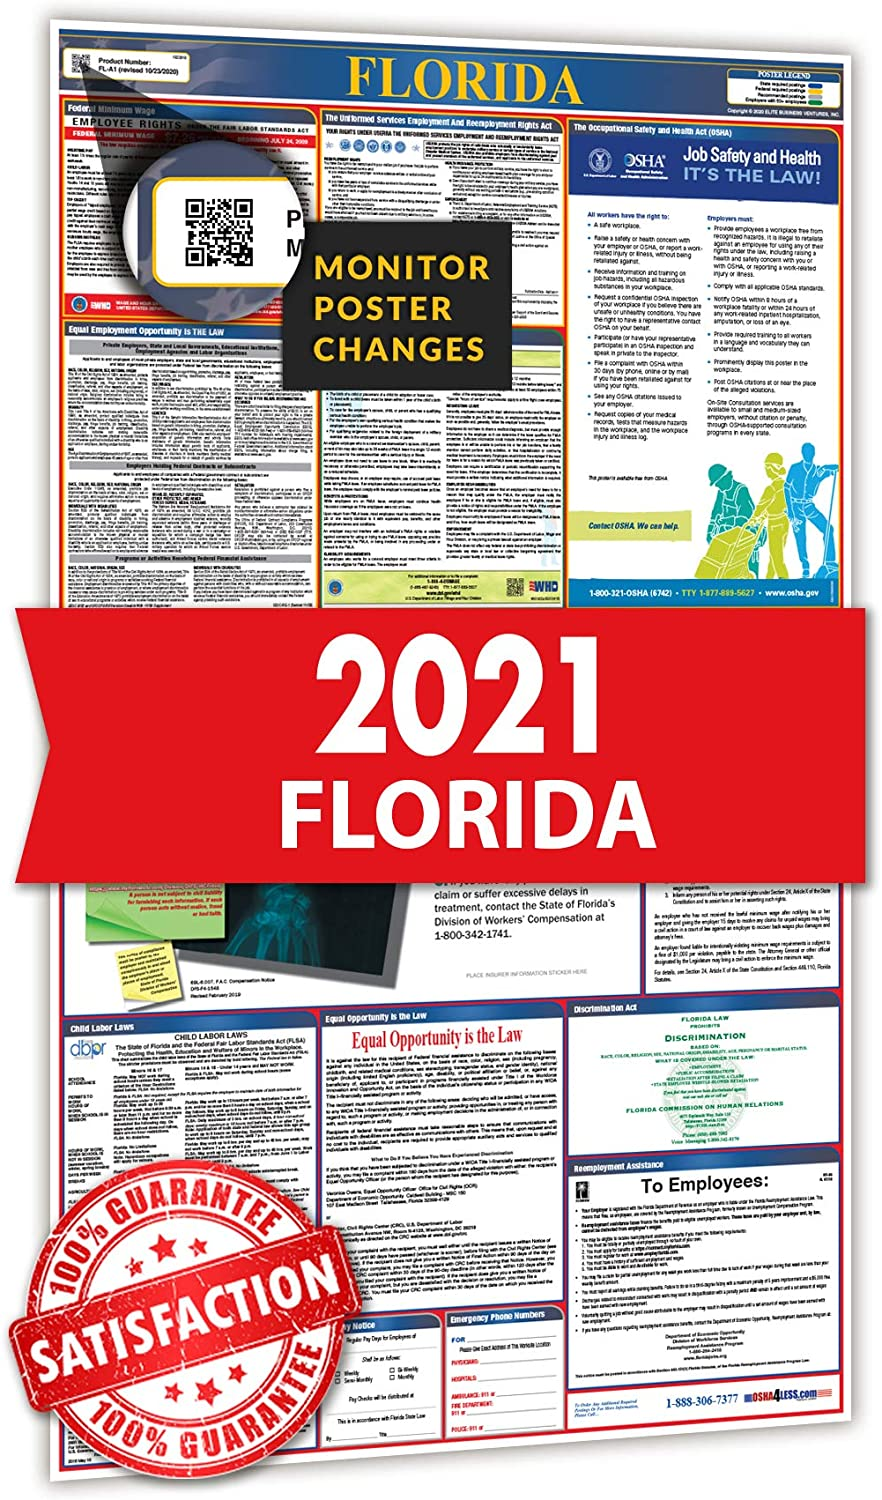 2021 Labor Law Poster - All in One State and Federal Labor Law Poster for Workplace Compliance, Florida FL